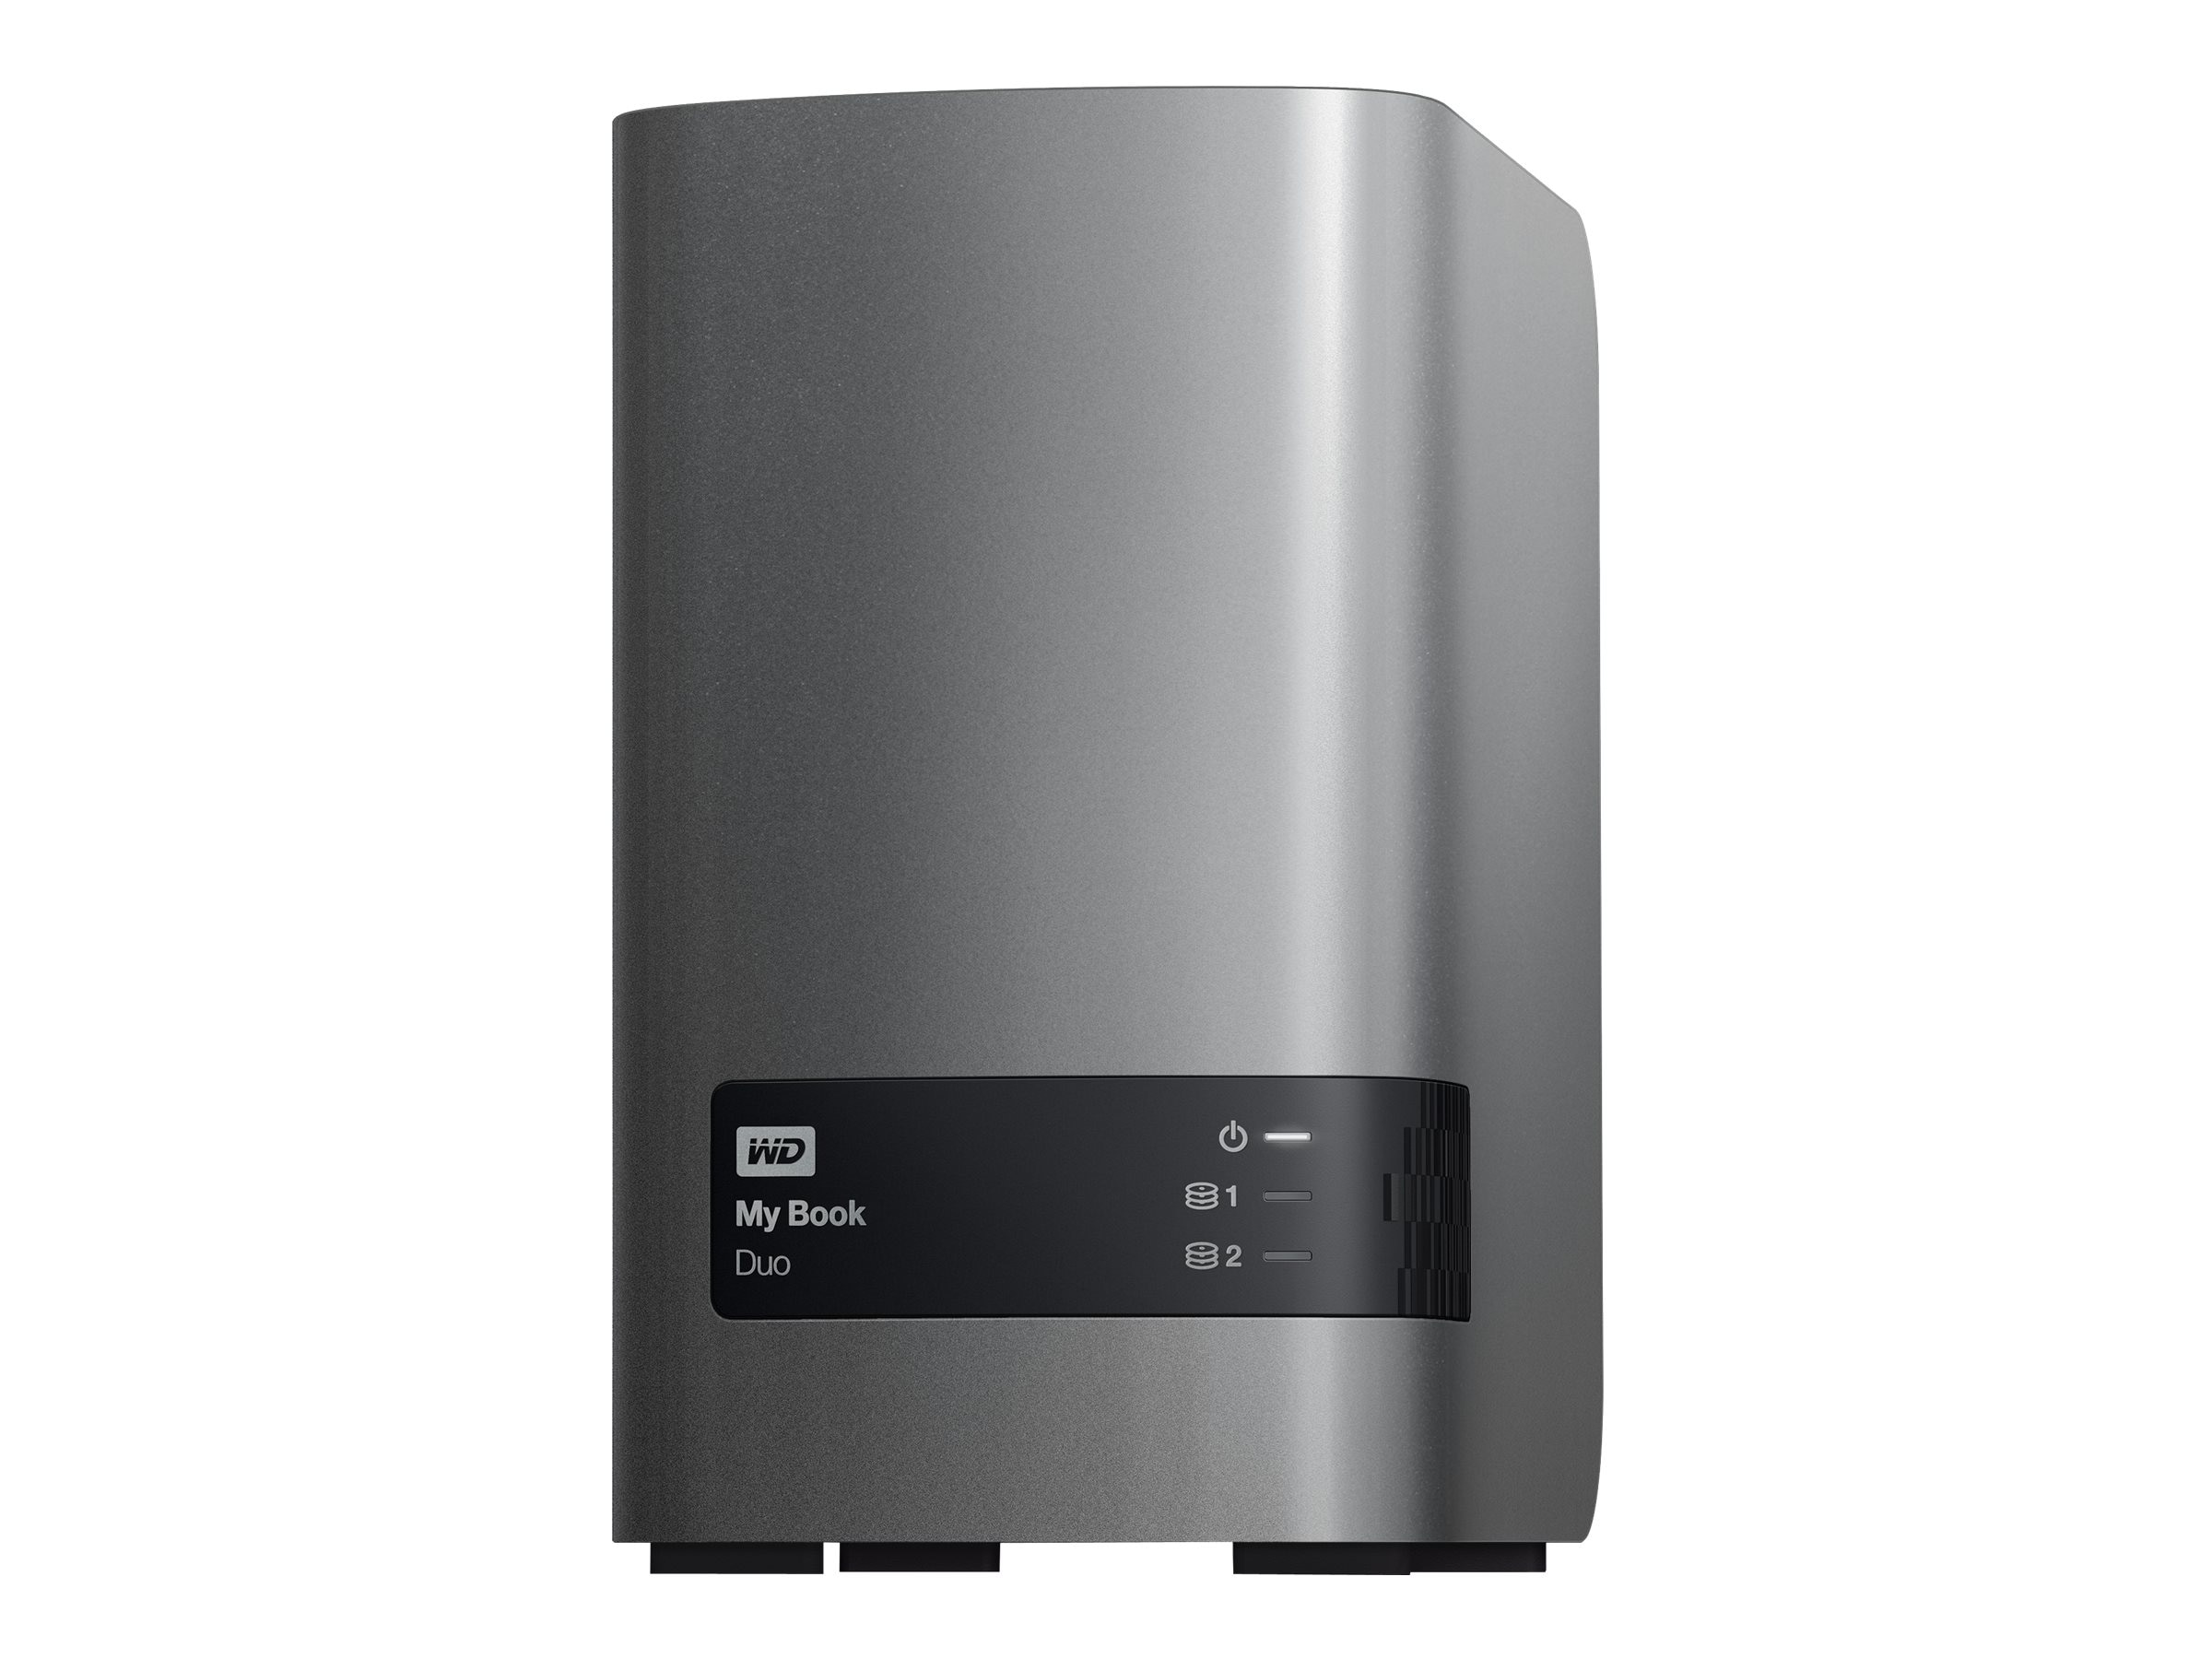 WD 8TB My Book Duo RAID Storage